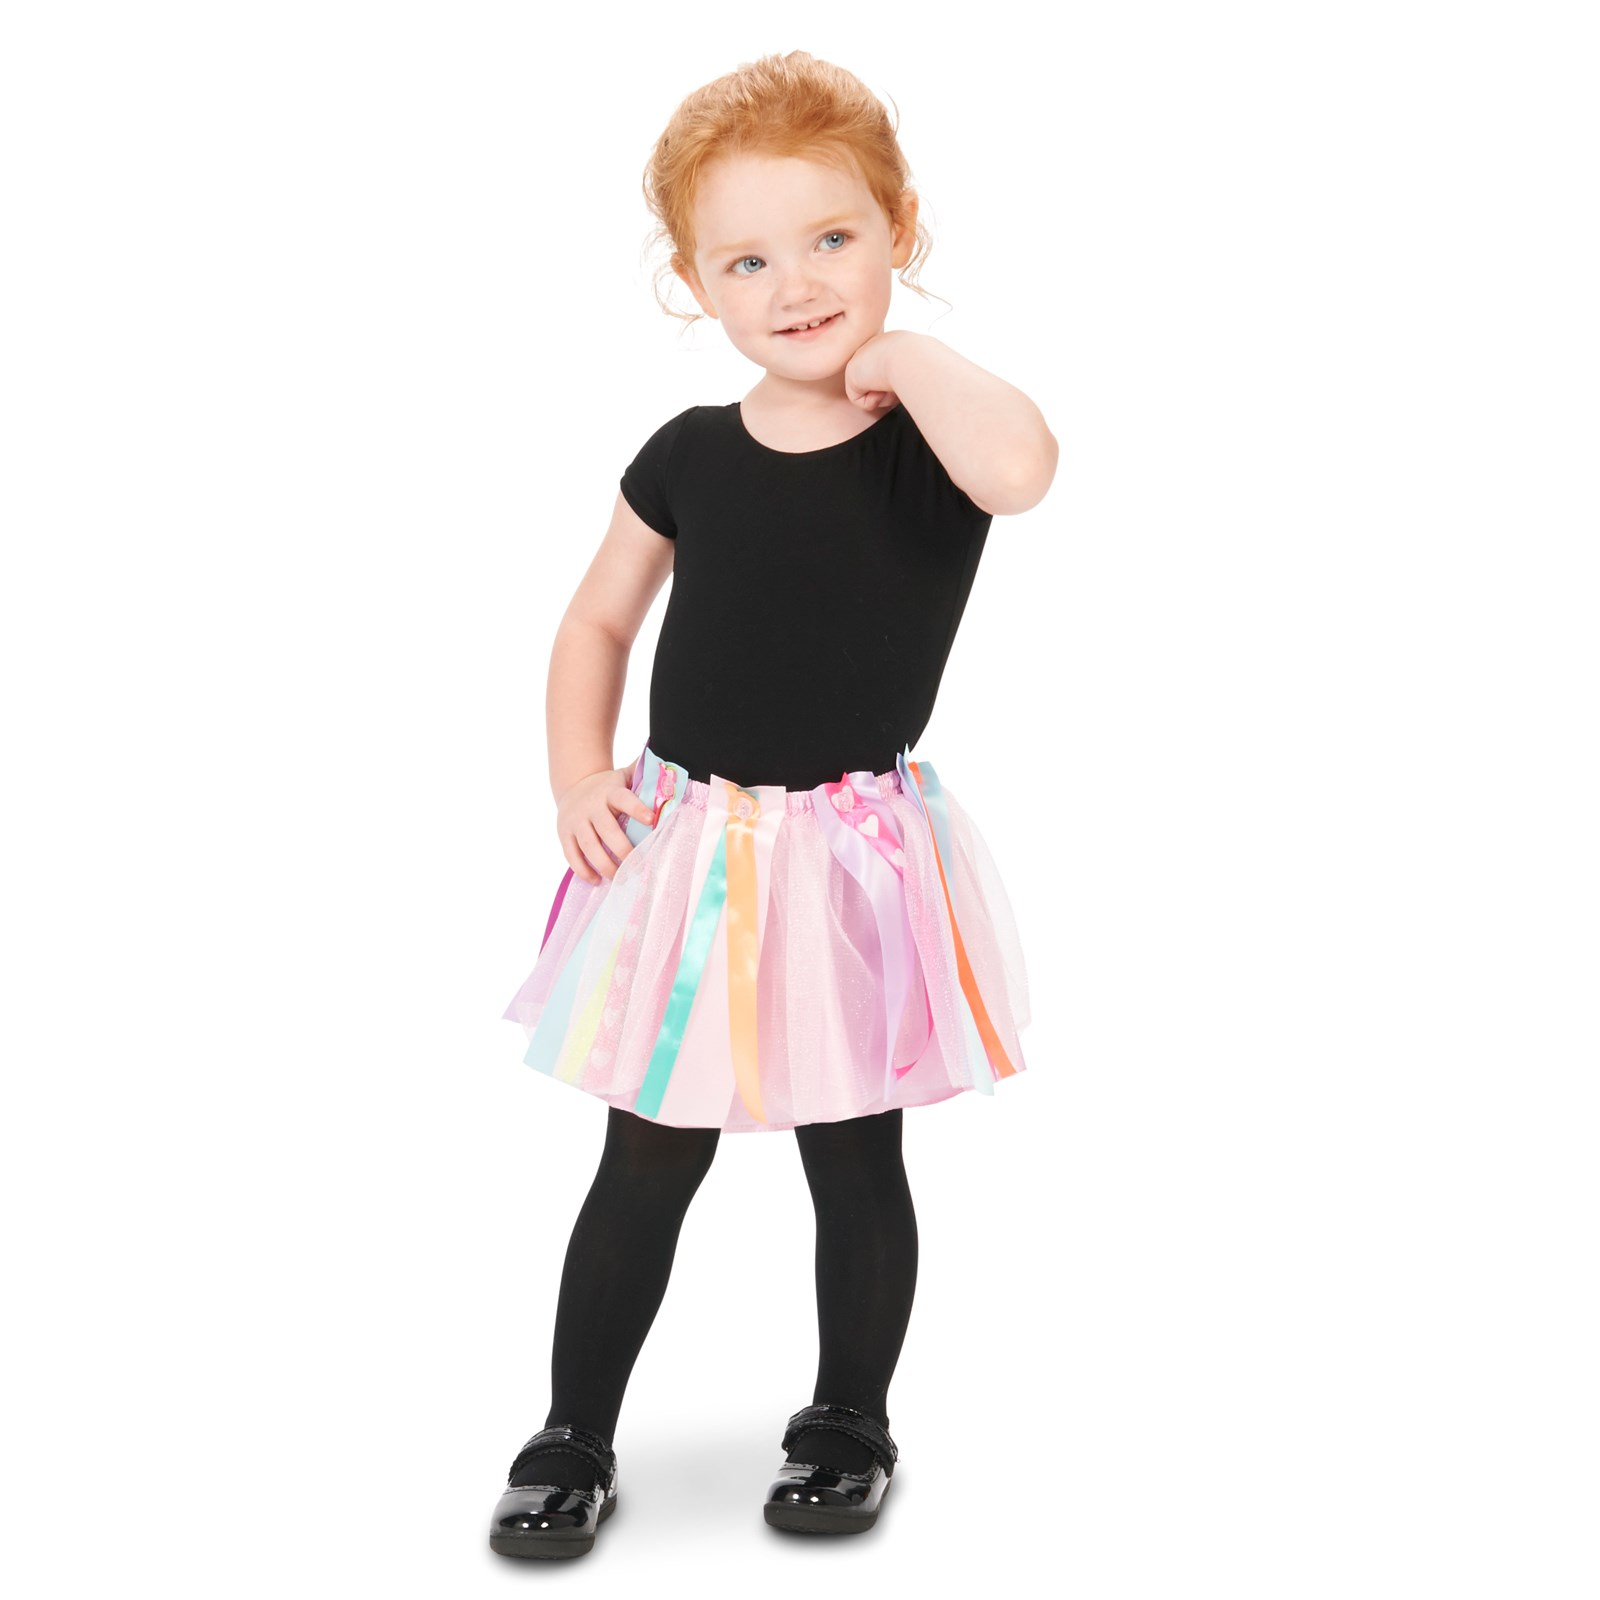 Your little angel will definitely be chosen for the best Halloween costume when she enters the party in one of our custom made tutu halloween costumes. We have fairy Halloween tutu costumes to Bumble Bee Halloween tutus to Halloween tutus for babies, toddlers and even big girls.